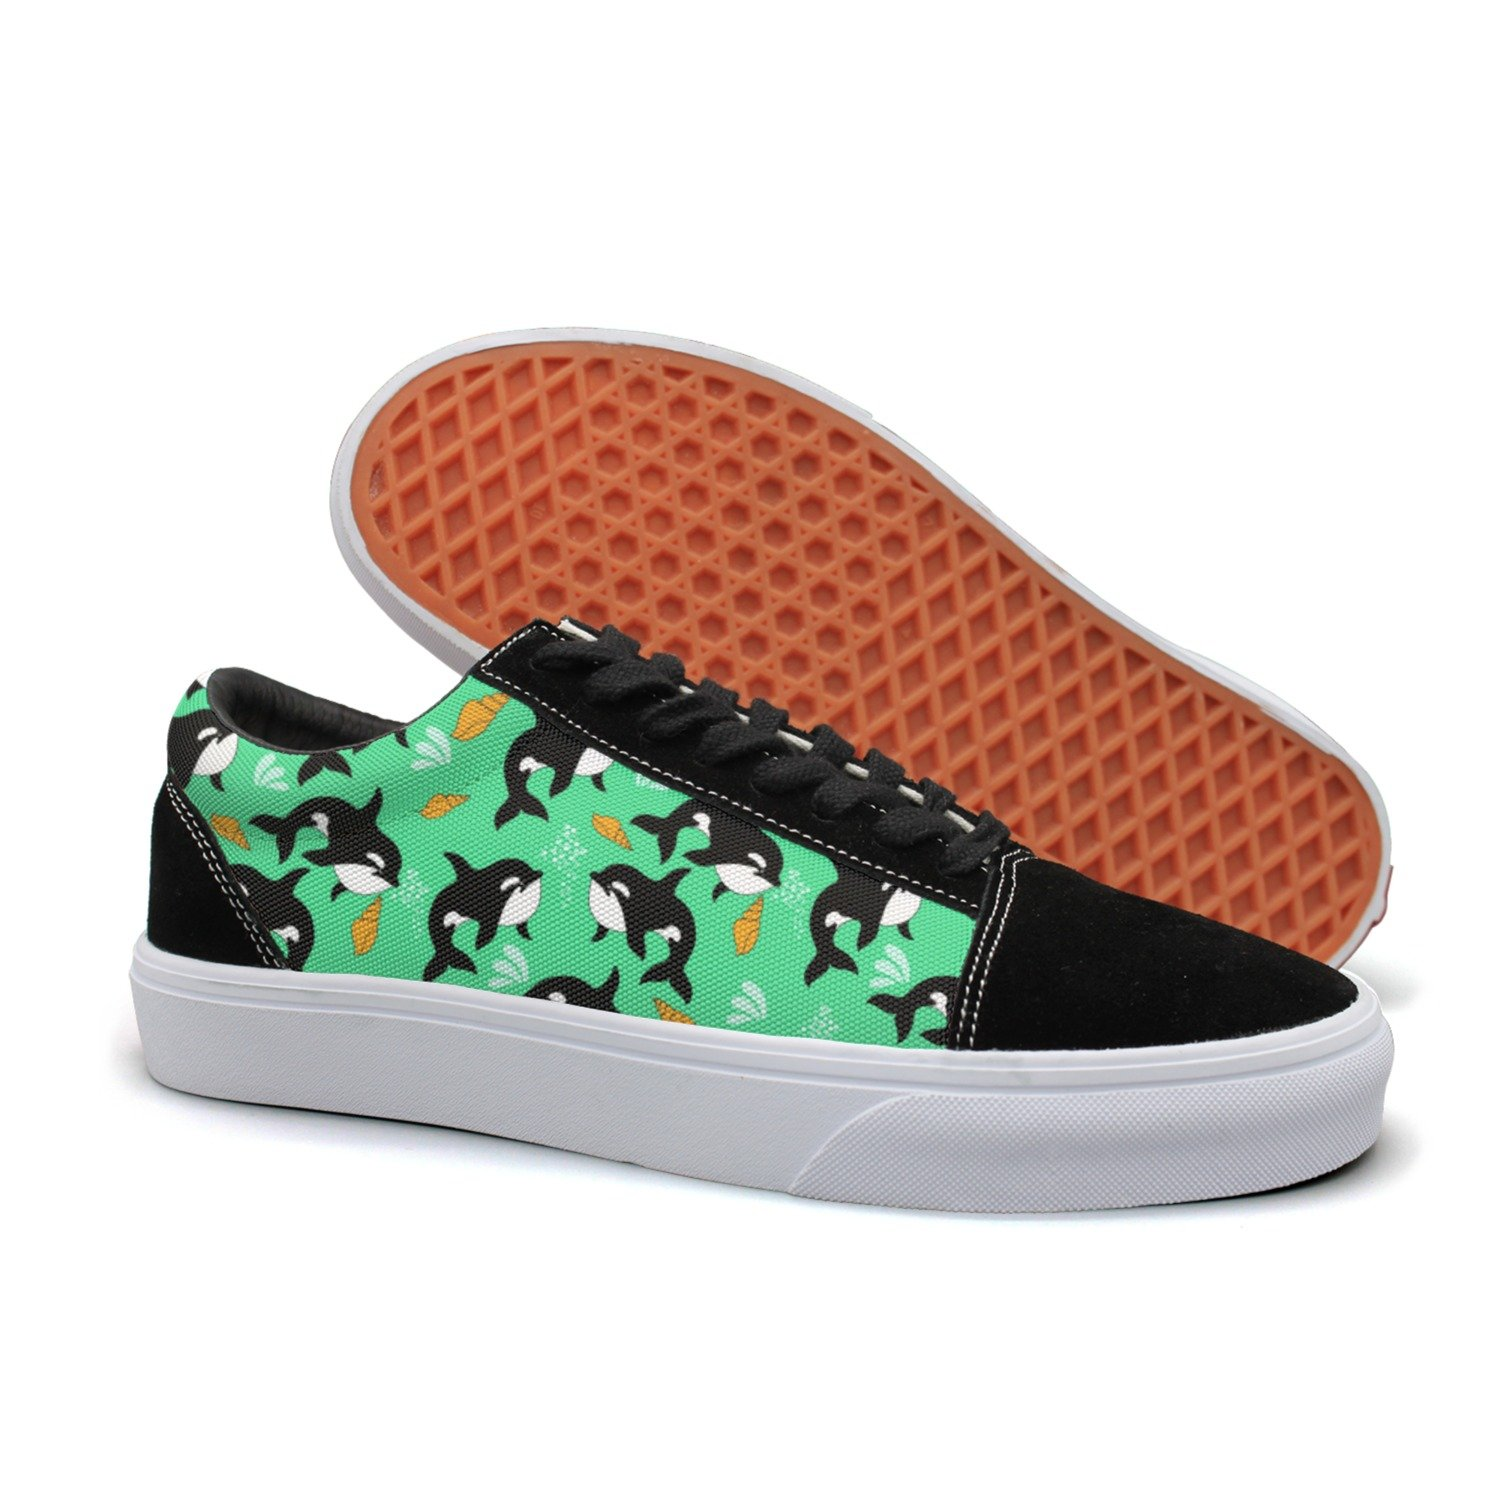 YCFTA Whale Party Supplies Men Casual Sneakers Shoes Flat Classic New Original